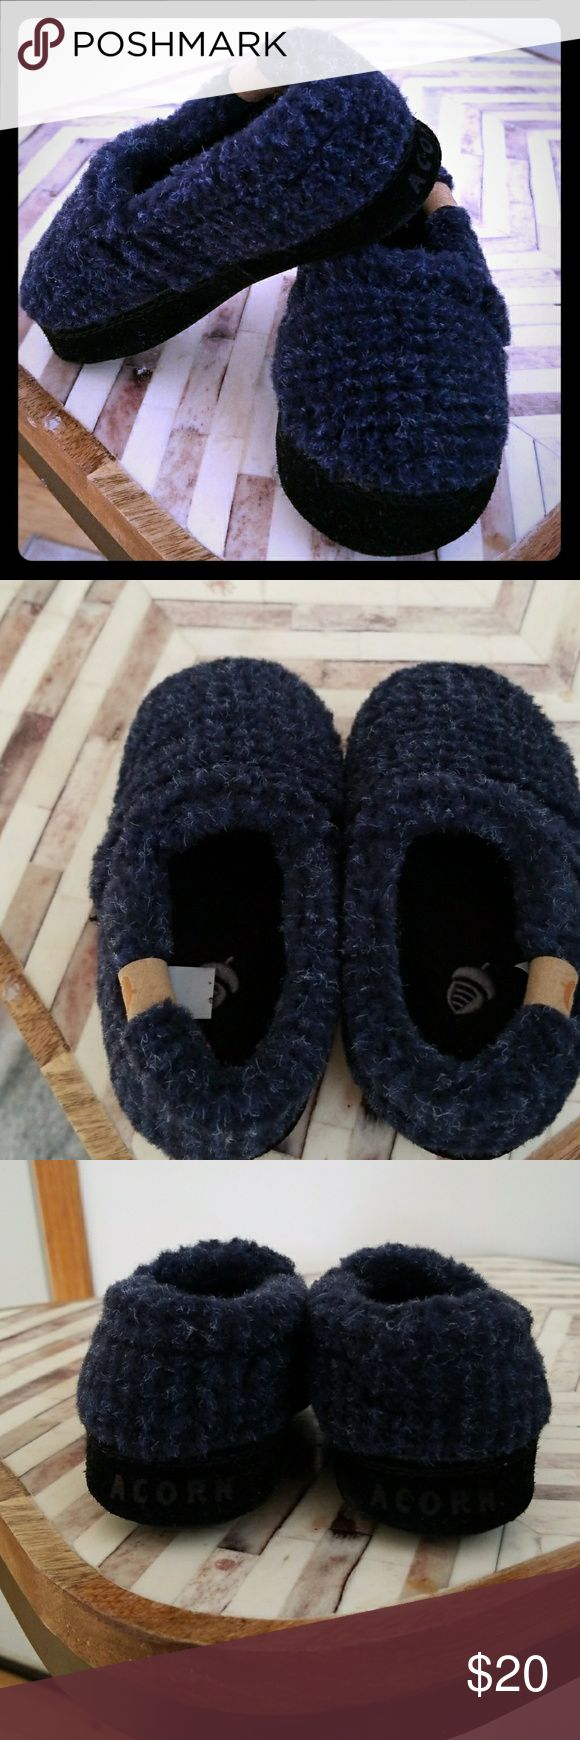 Acorn Slippers (Navy blue) toddler New with out tags kids/infents navy blue colored slippers. Never worn, only tiered on for Christmas. True to size for toddler boys size 8-9. From pet free, smoke free home. Acorn Shoes Slippers